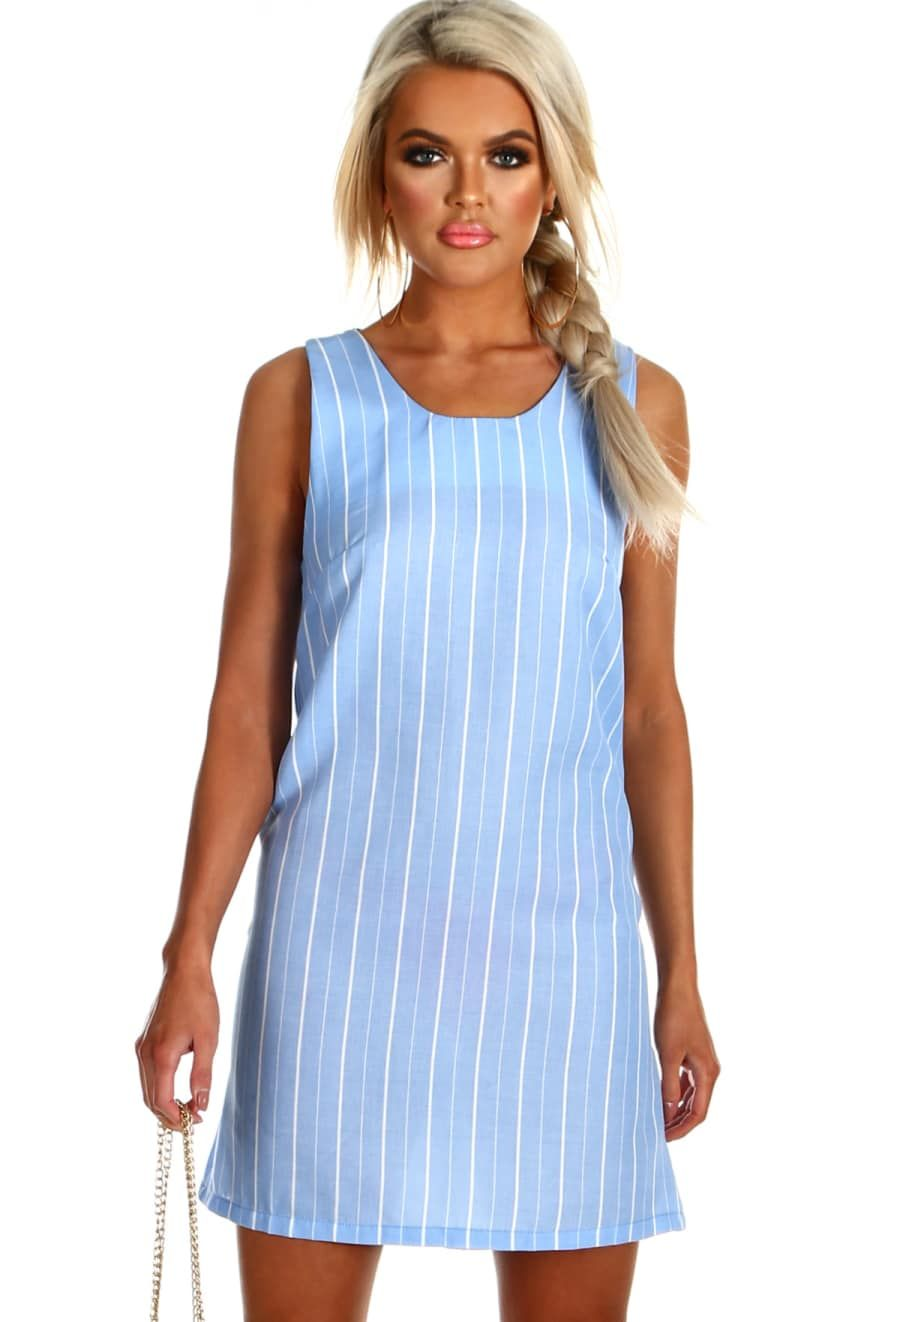 Stripe Tease Blue and White Stripe Lace Up Shift Dress 8